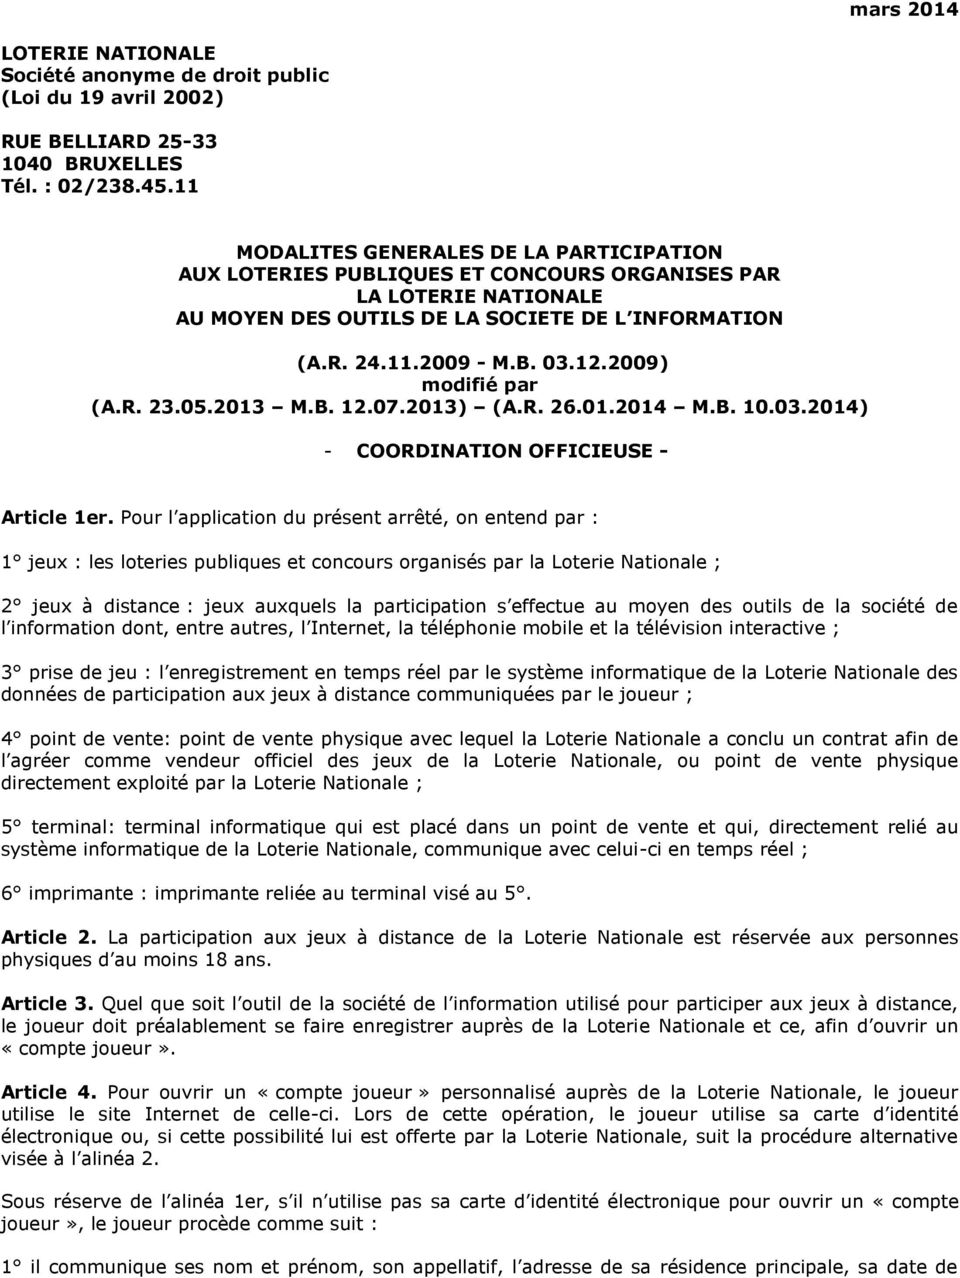 2009) modifié par (A.R. 23.05.2013 M.B. 12.07.2013) (A.R. 26.01.2014 M.B. 10.03.2014) - COORDINATION OFFICIEUSE - Article 1er.